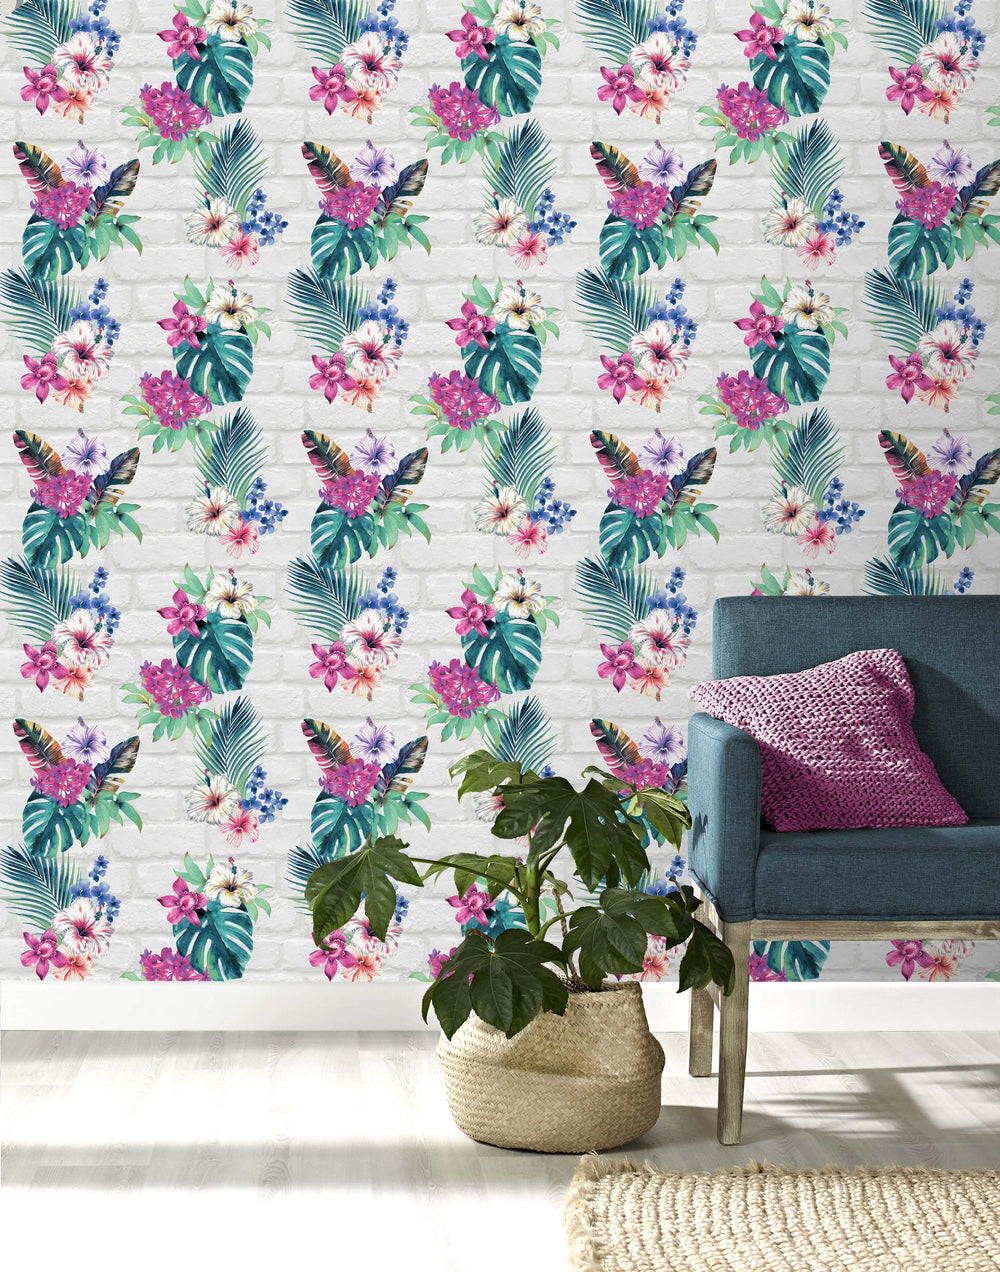 Floral Camden Brick Accessorize Wallpaper | White, Grey, Pink, Green & Blue - Your 4 Walls